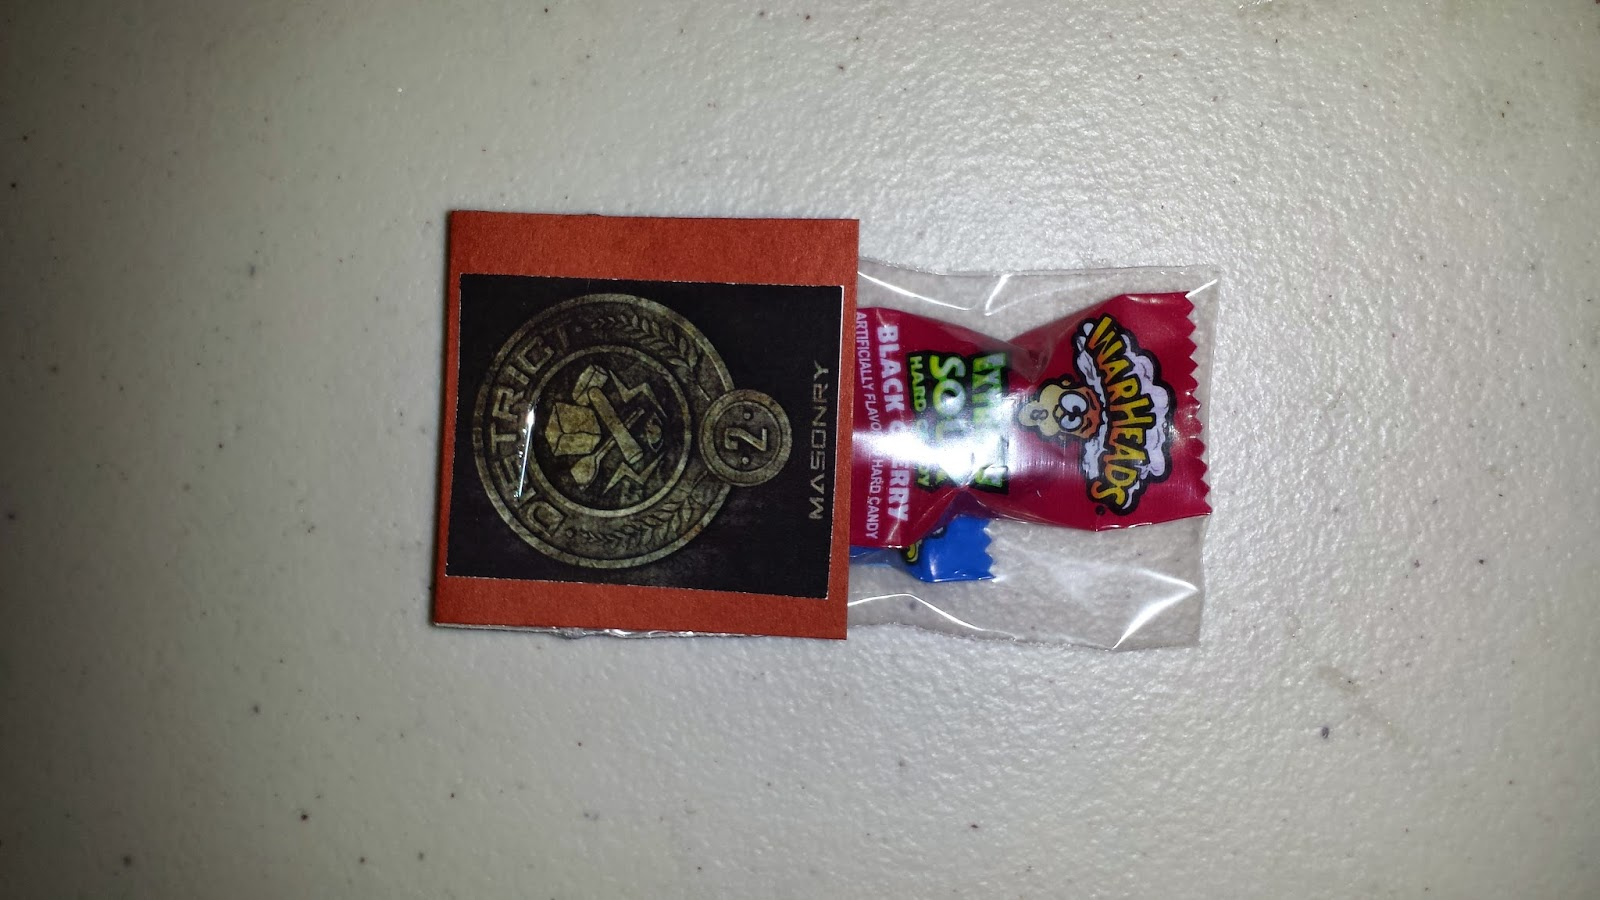 District 2 warheads favors